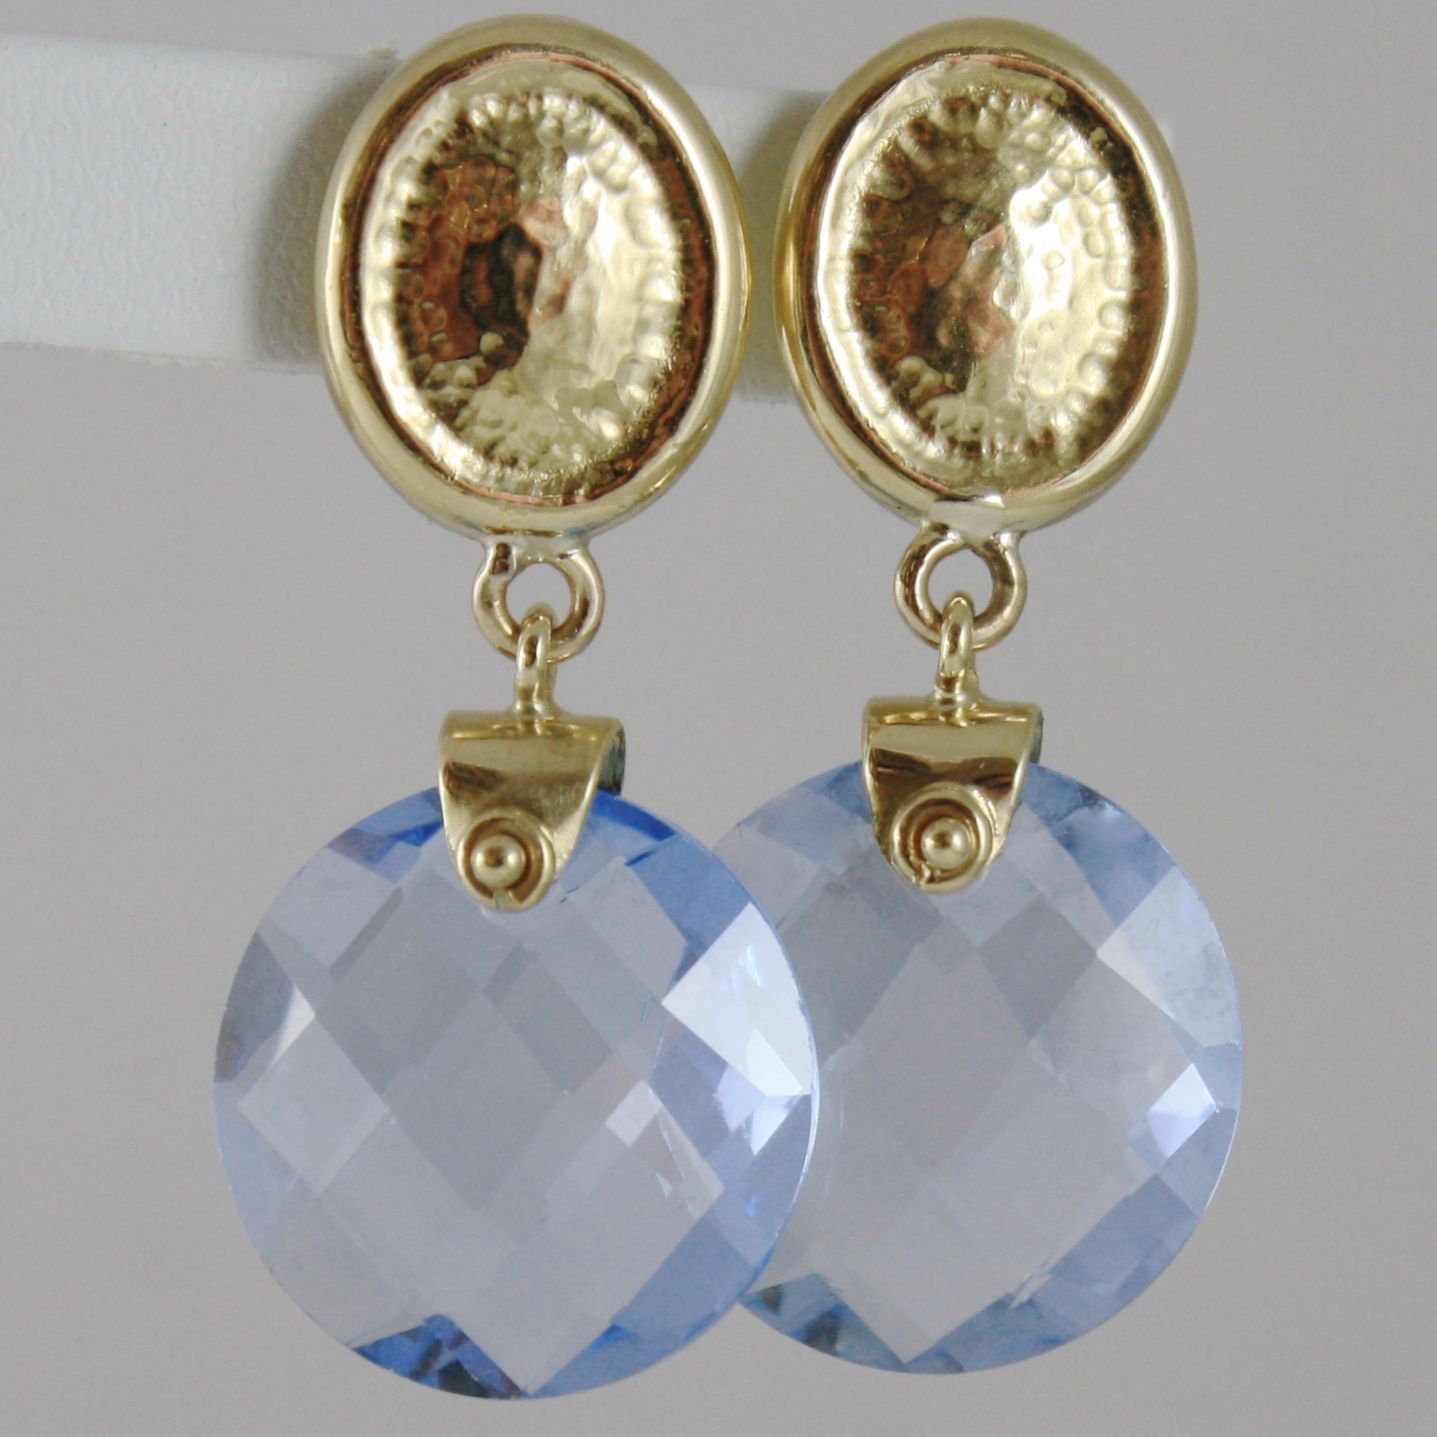 SOLID 18K YELLOW GOLD PENDANT EARRINGS OVALS WITH 13 CARATS CUSHION BLUE TOPAZ